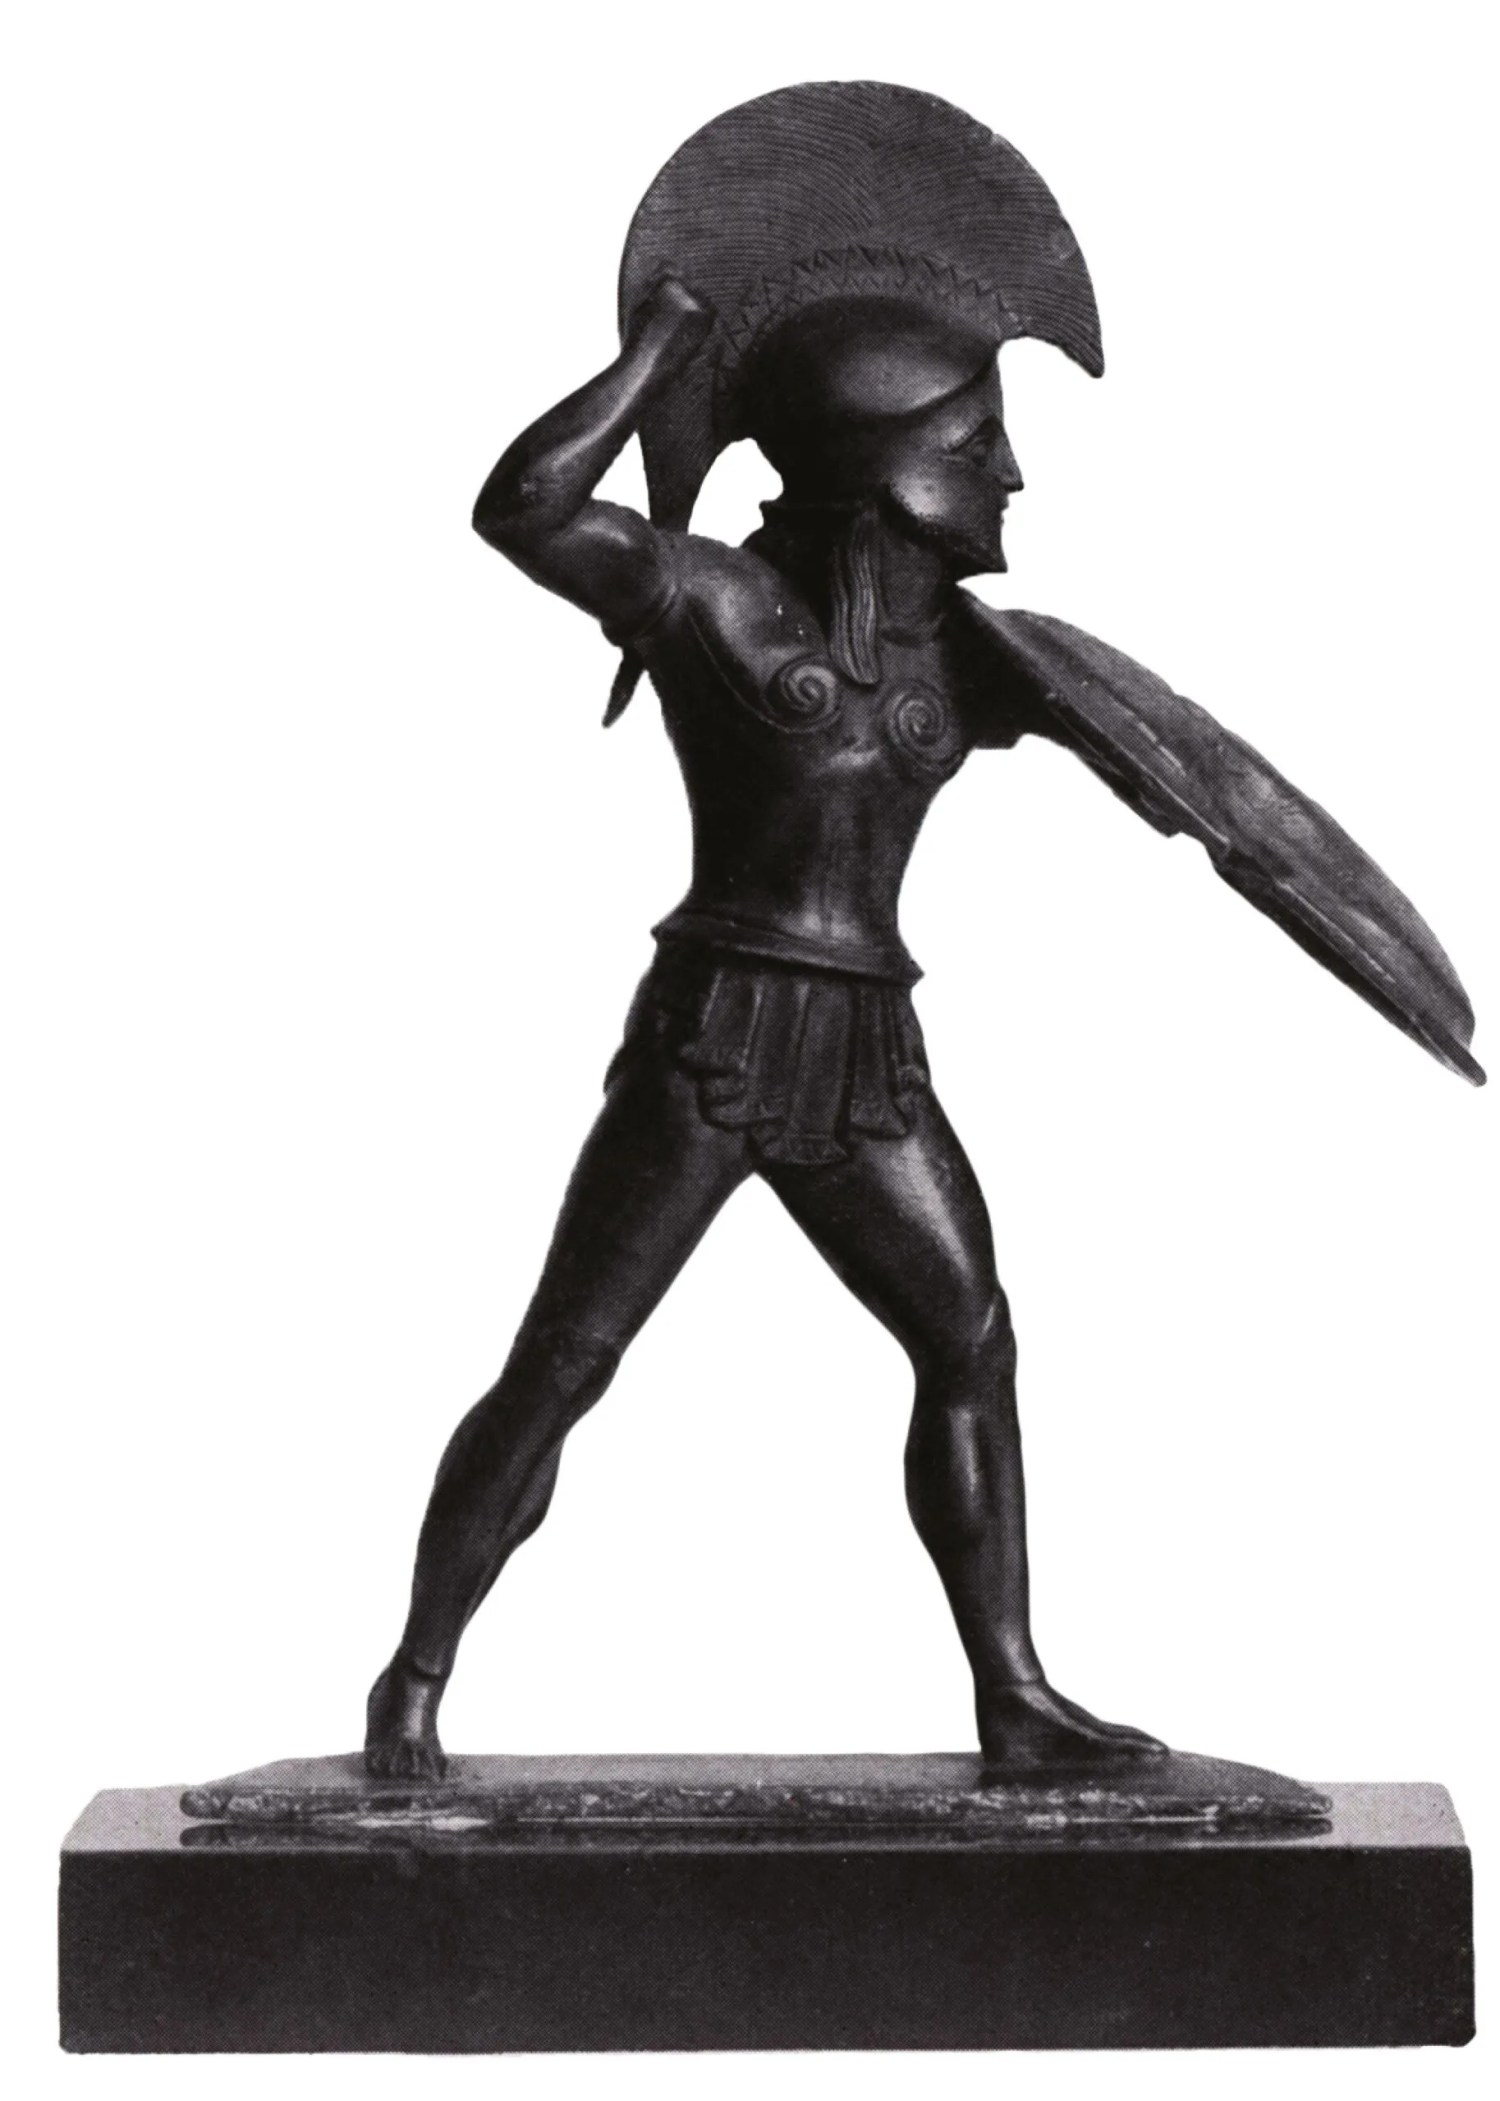 Below Miniature bronze figurine of a Greek hoplite in action. right Persian Immortals, the elite bodyguard troops of the 'King of Kings', as depicted on glazed tiles at the Persian imperial capital at Susa. The Immortals went head to head with the Spartans at Thermopylae, but failed to break through in frontal attack.